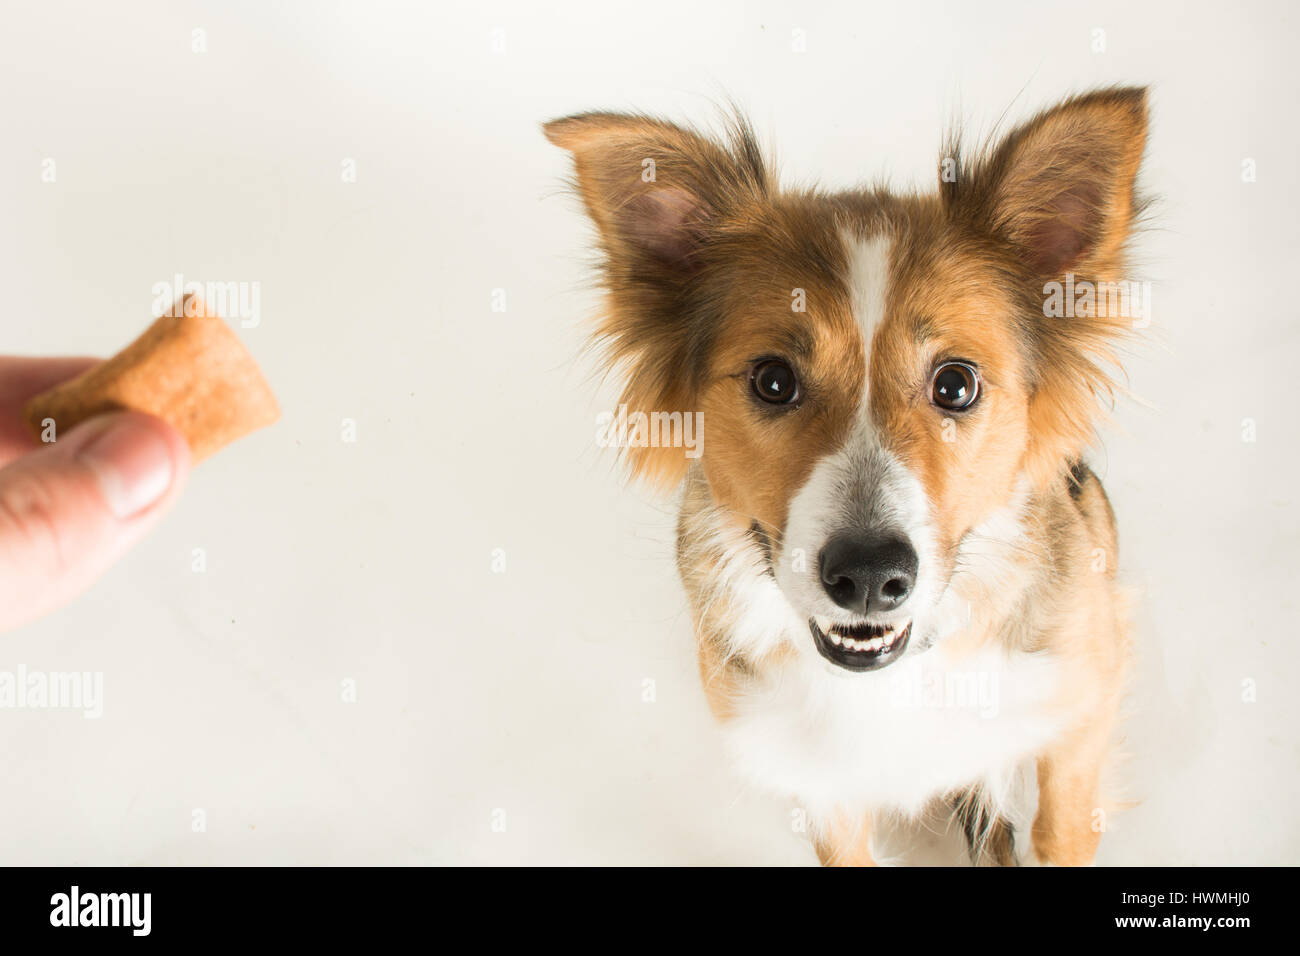 One Beautiful Border Collie - Stock Image